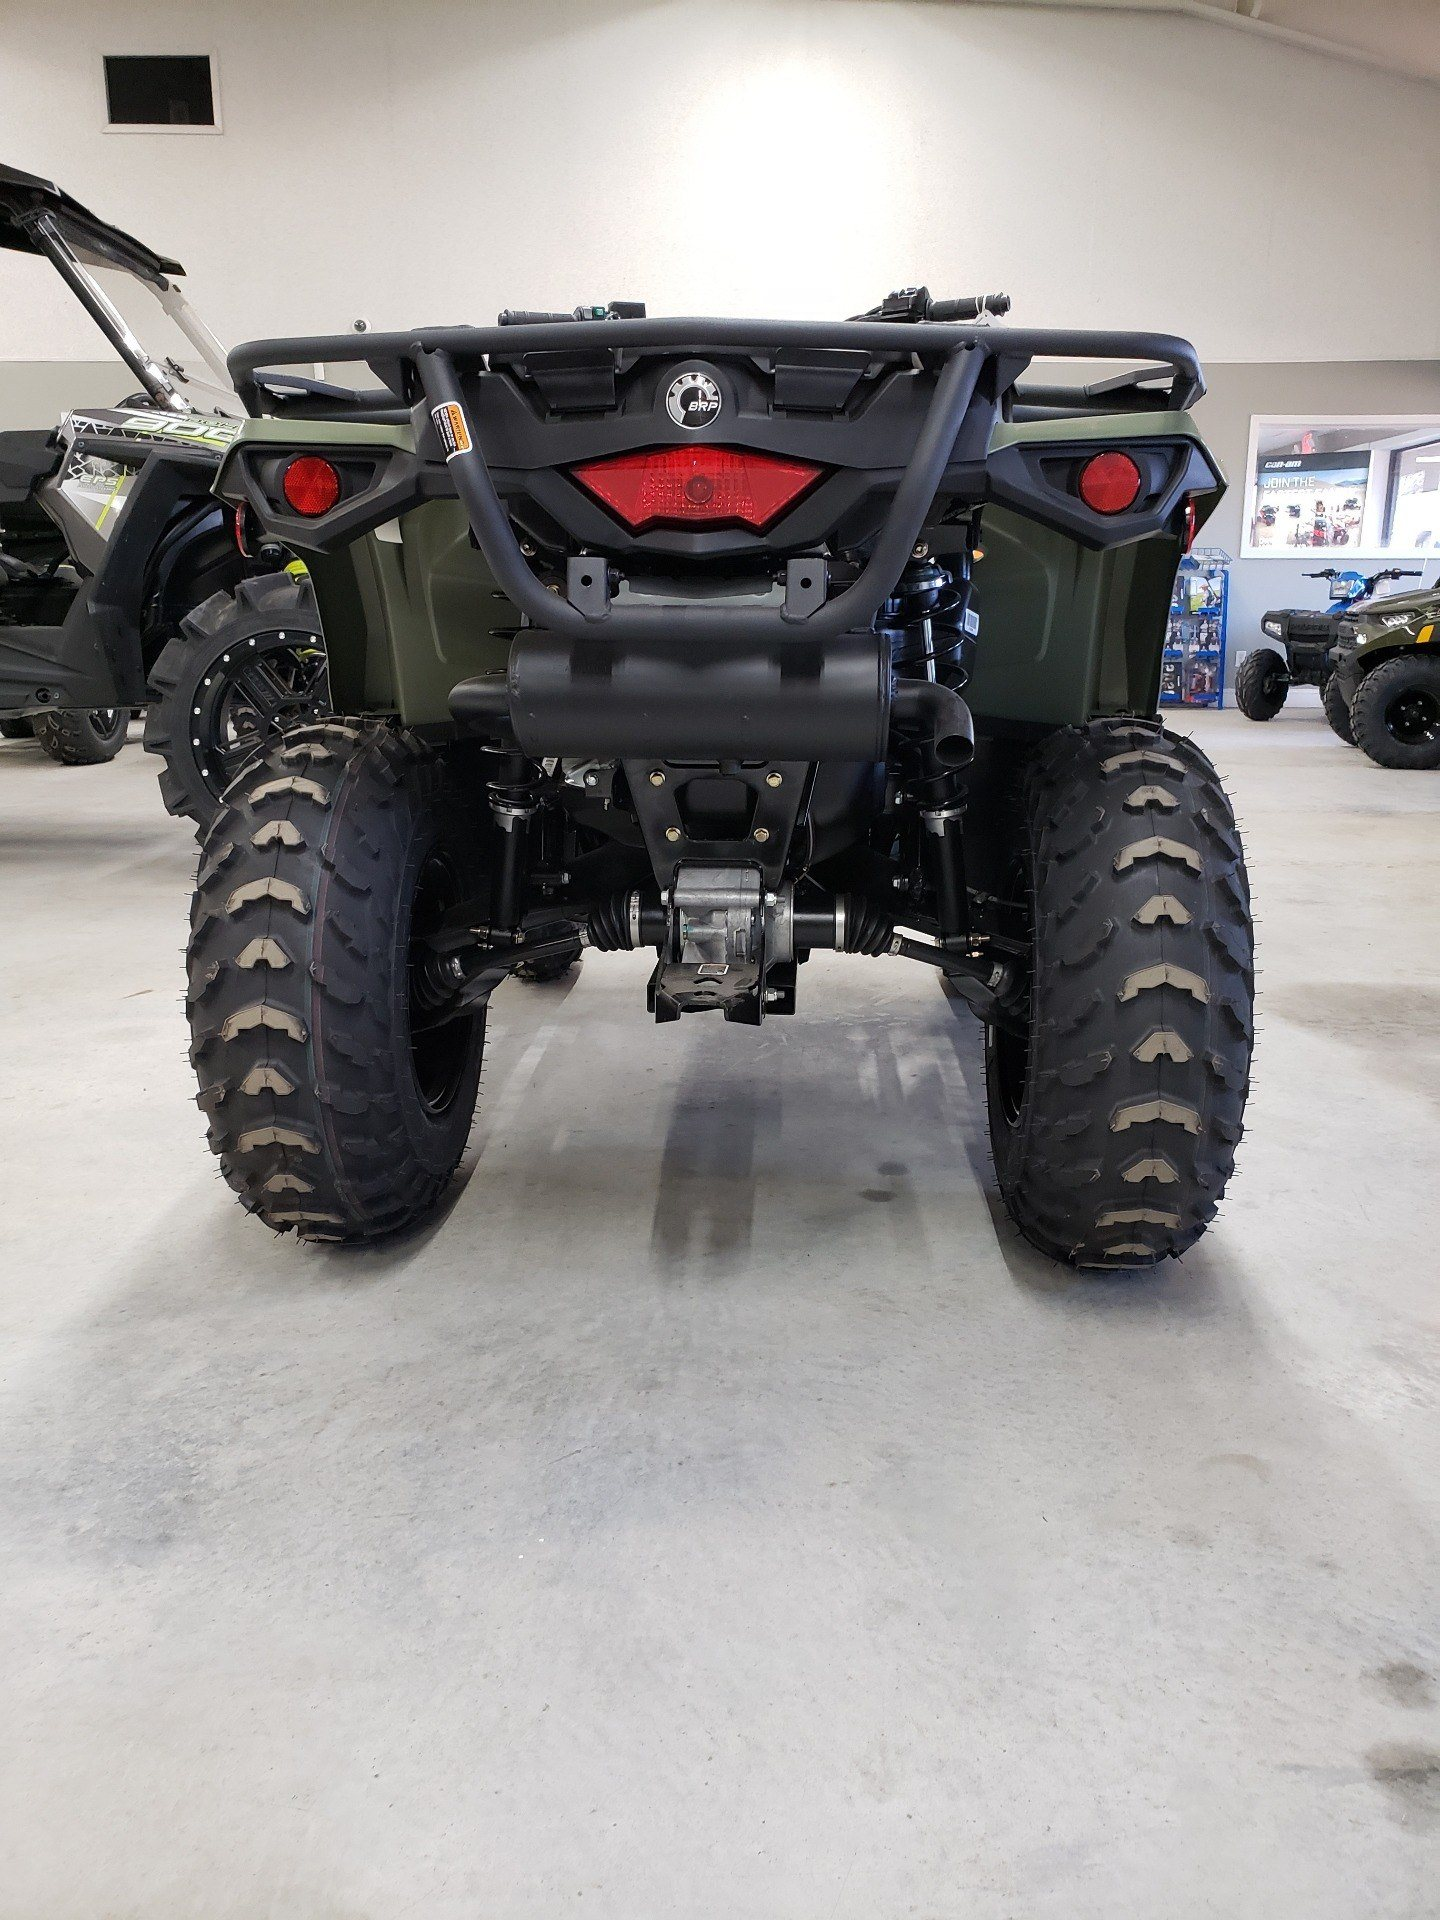 2020 Can-Am Outlander 450 in Pine Bluff, Arkansas - Photo 4